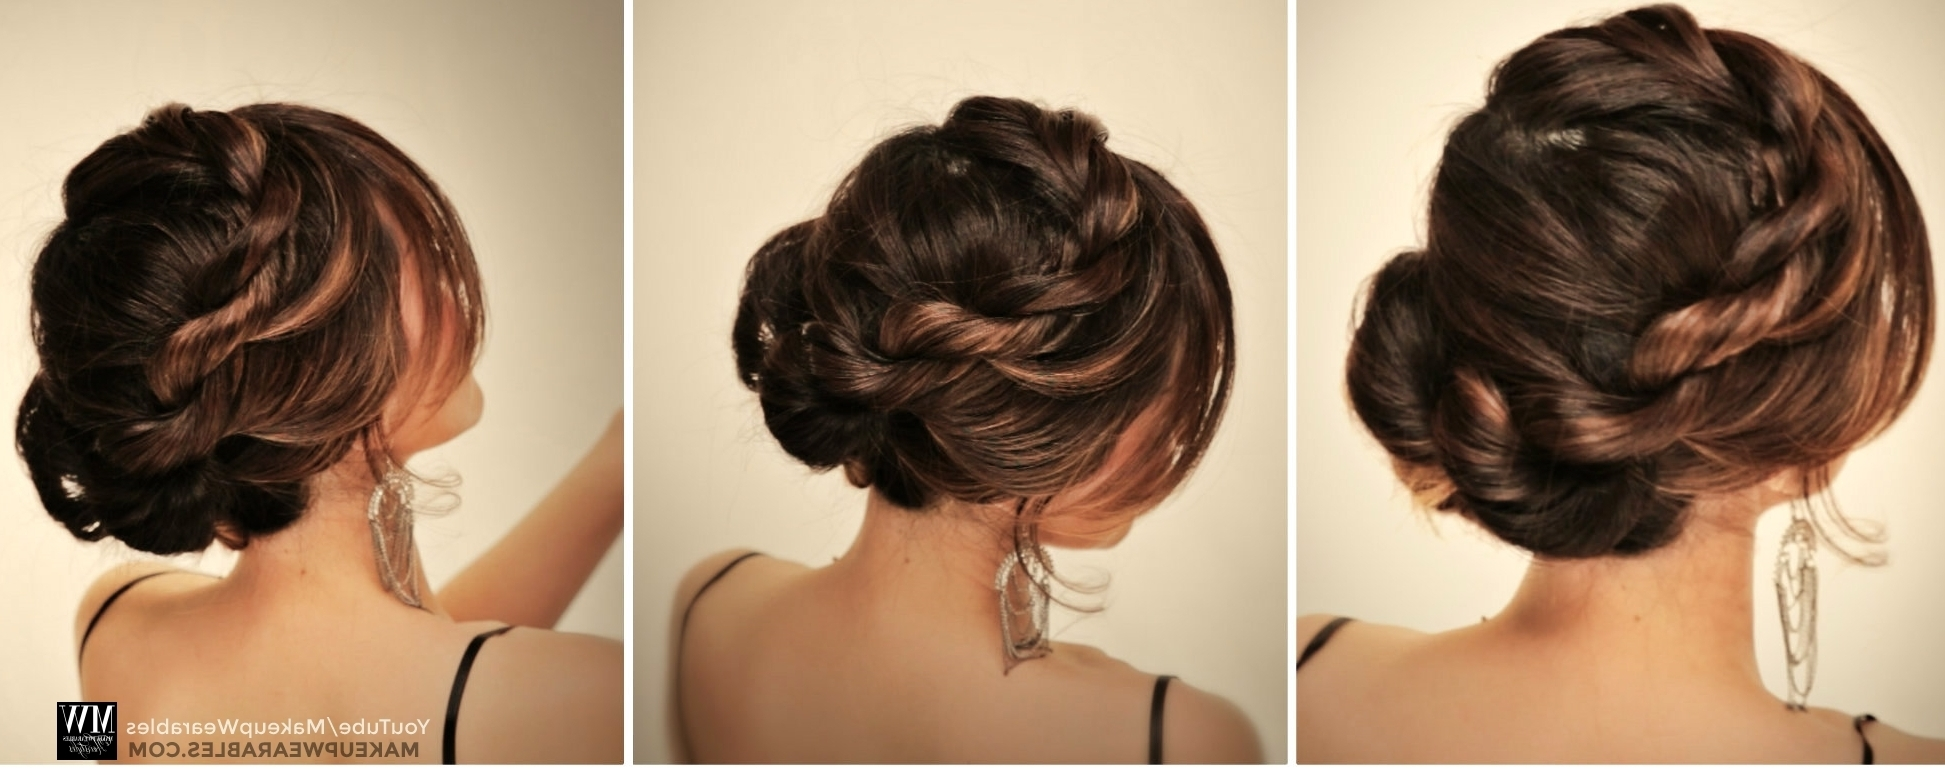 How To: 5 Amazingly Cute + Easy Hairstyles With A Simple Twist With Long Hair Updo Hairstyles For Work (View 12 of 15)